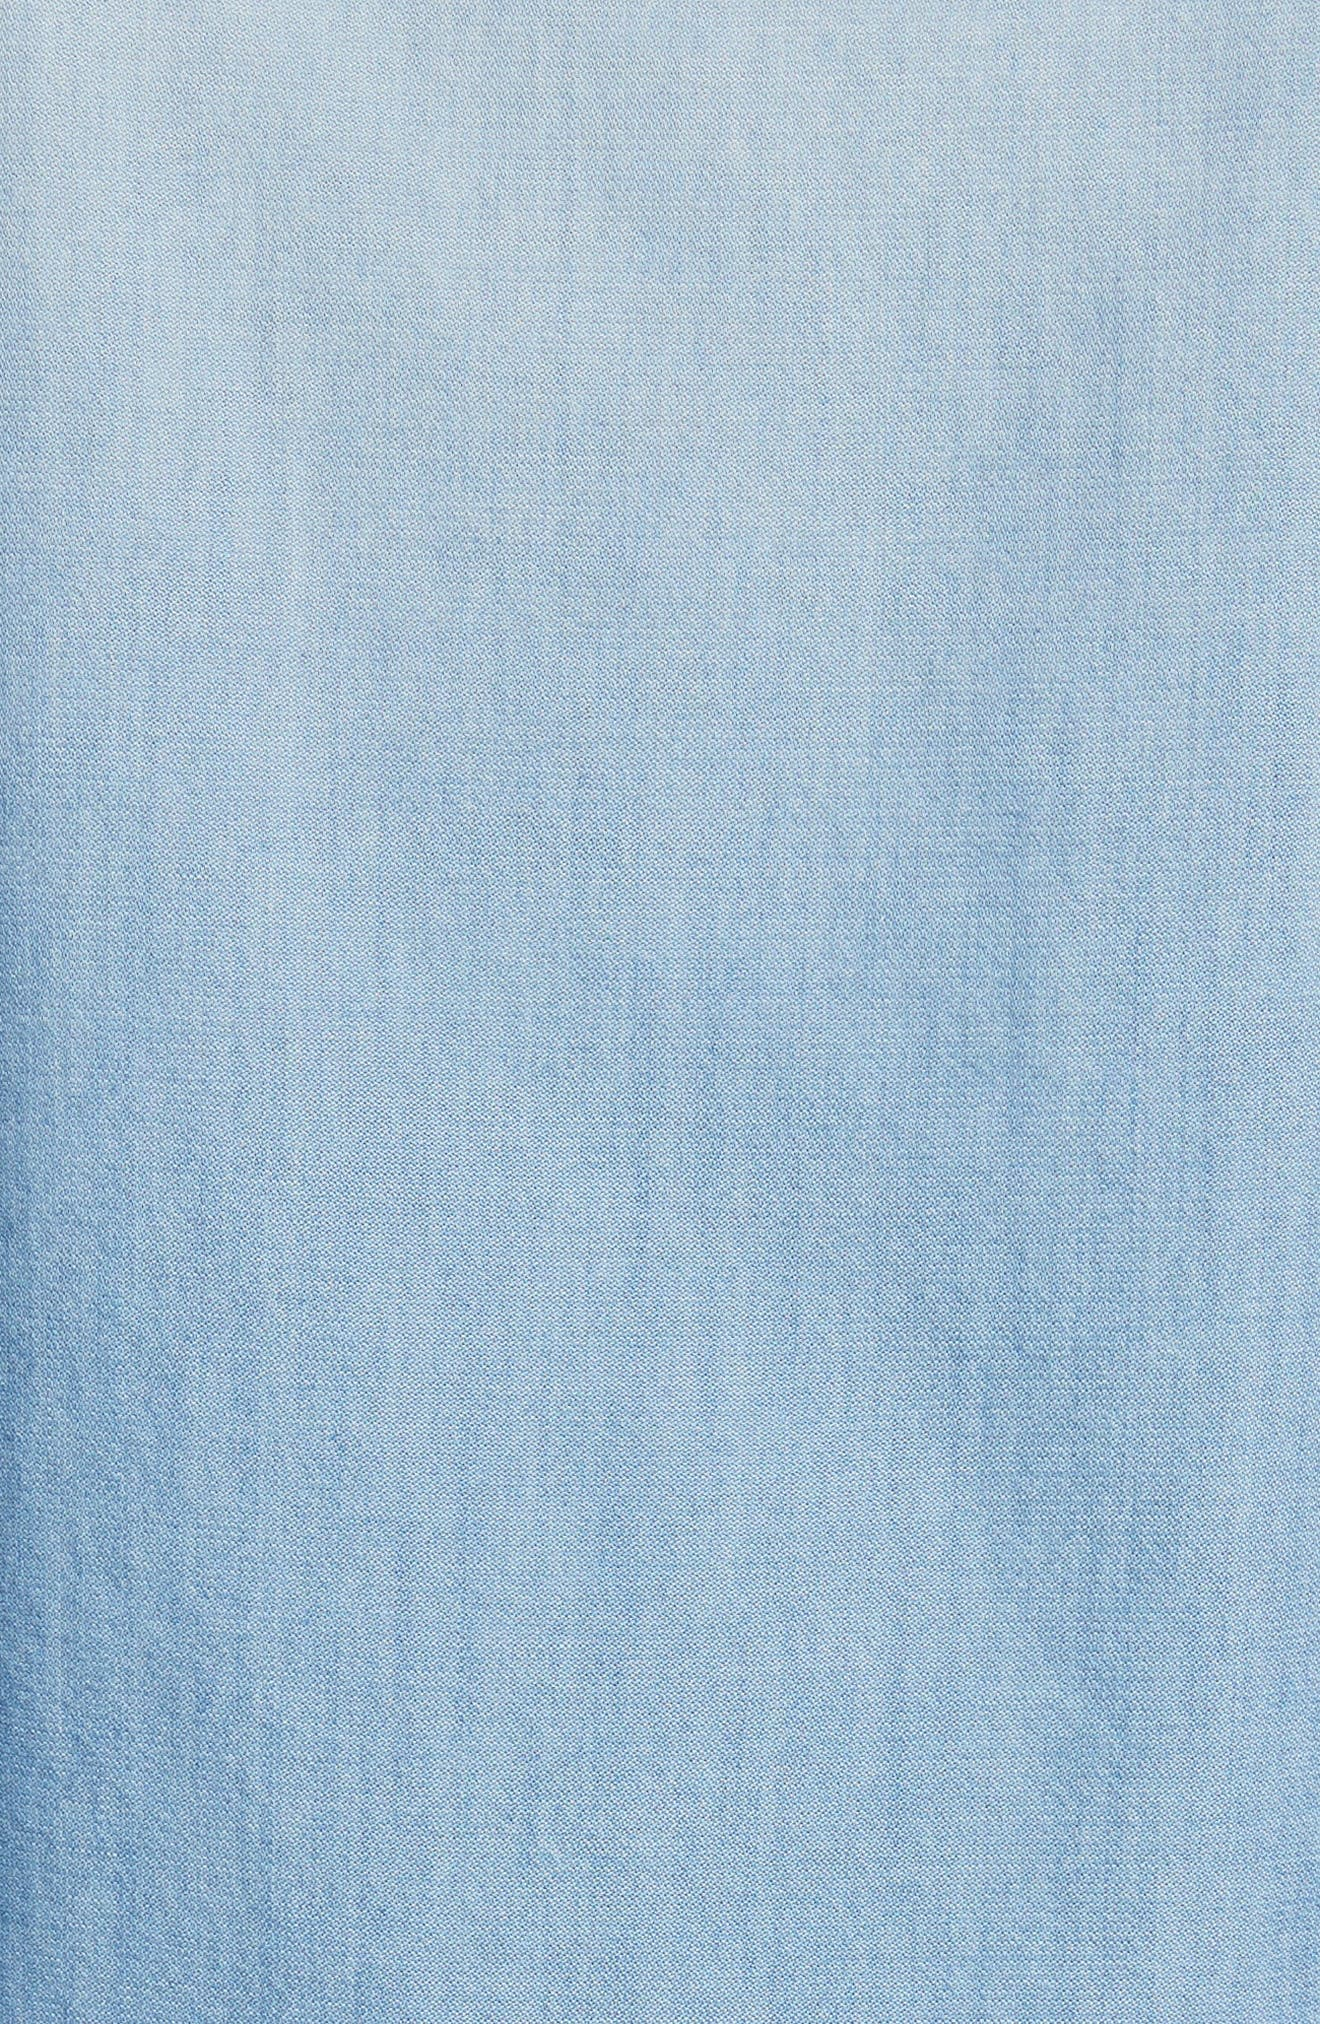 Cotton & Cashmere Chambray Blouse,                             Alternate thumbnail 6, color,                             Denim Blue